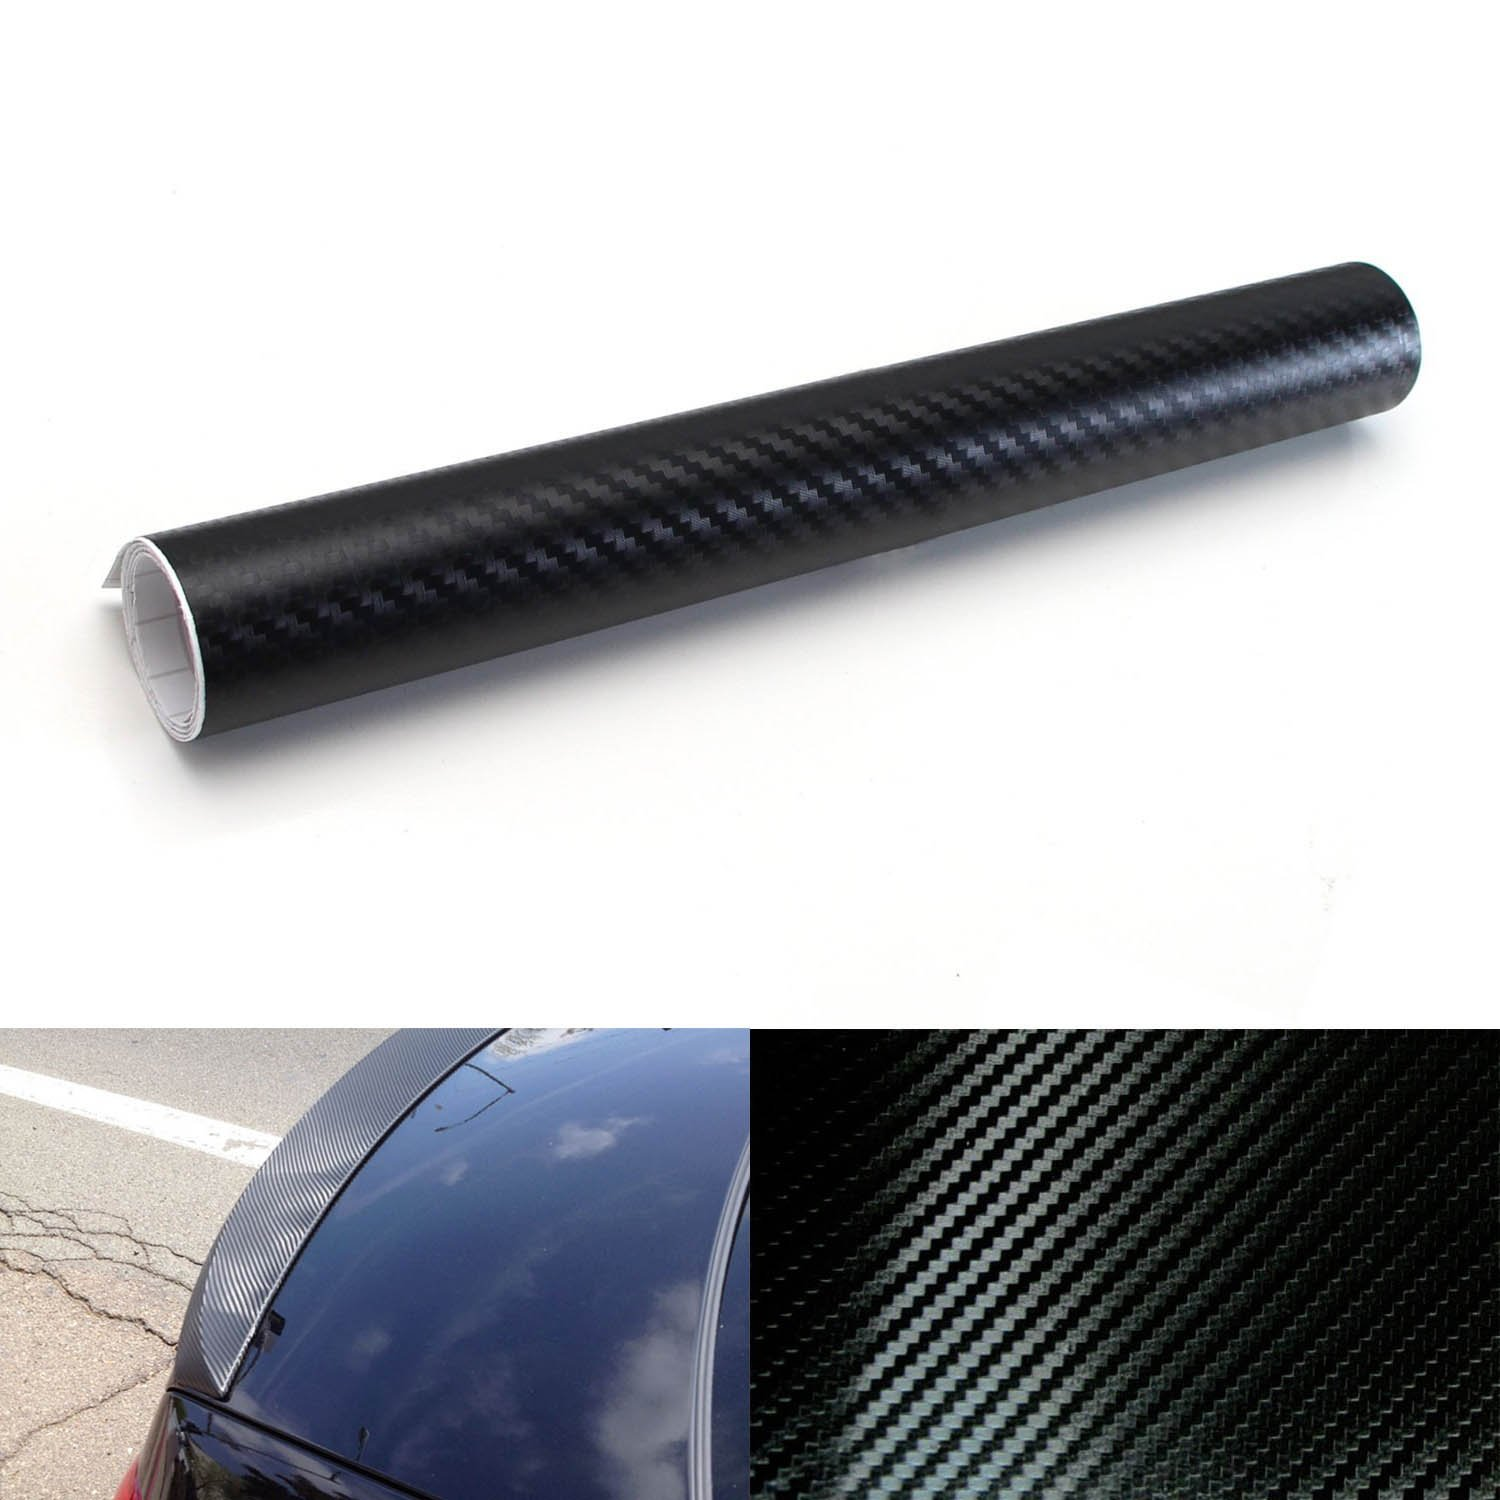 iJDMTOY 12 by 40 inches 3D Twill Weave Glossy Black Carbon Fiber Vinyl Sheet For Trunk/Bumper/Roof Lip, Spoiler, Side Markers, Side Skirts, Fender, Interior, etc